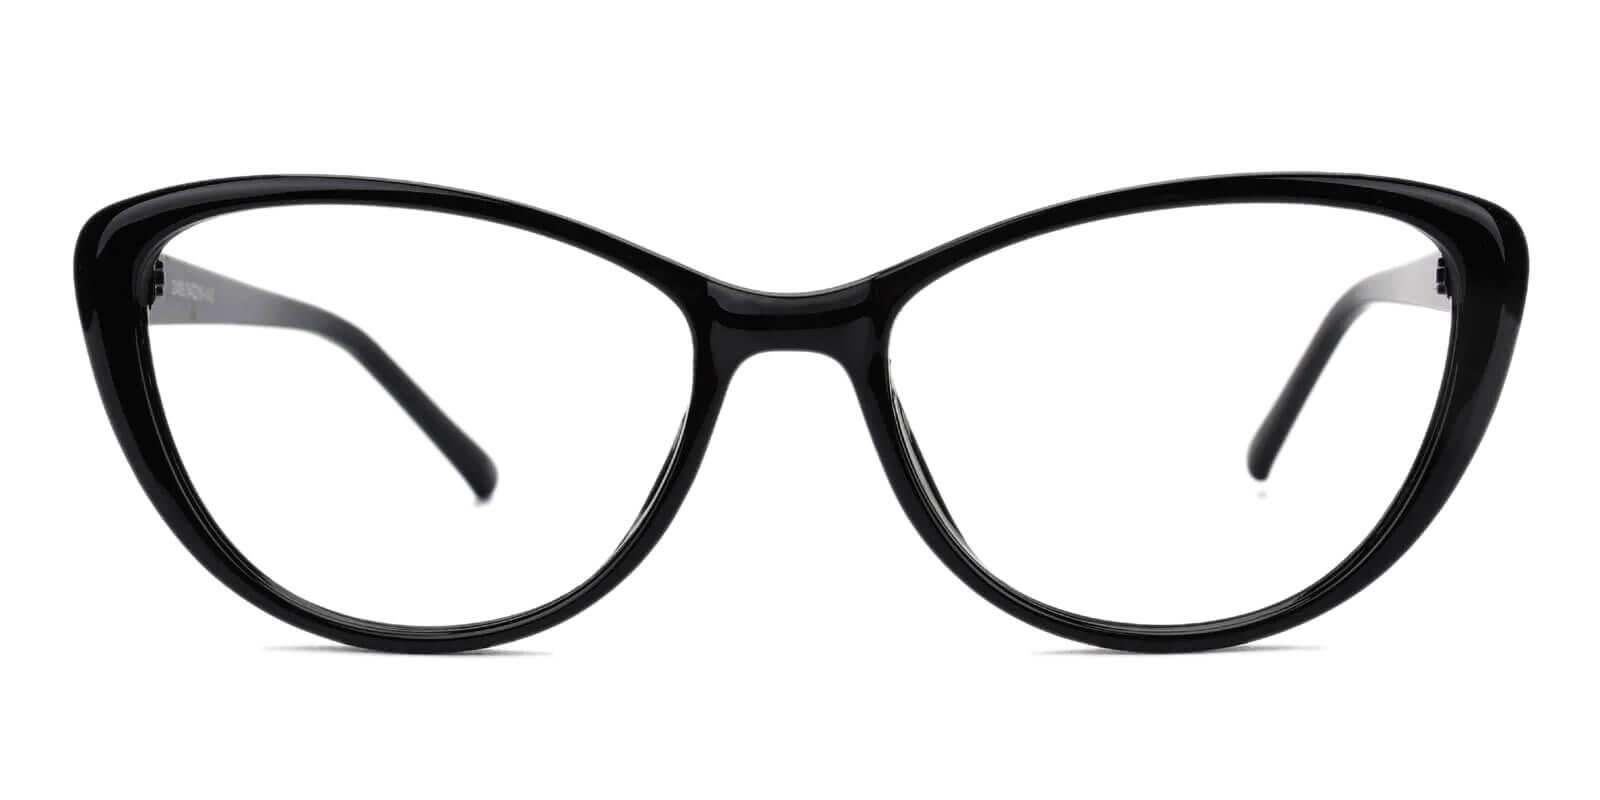 Olga Black Plastic Eyeglasses Frames from ABBE Glasses